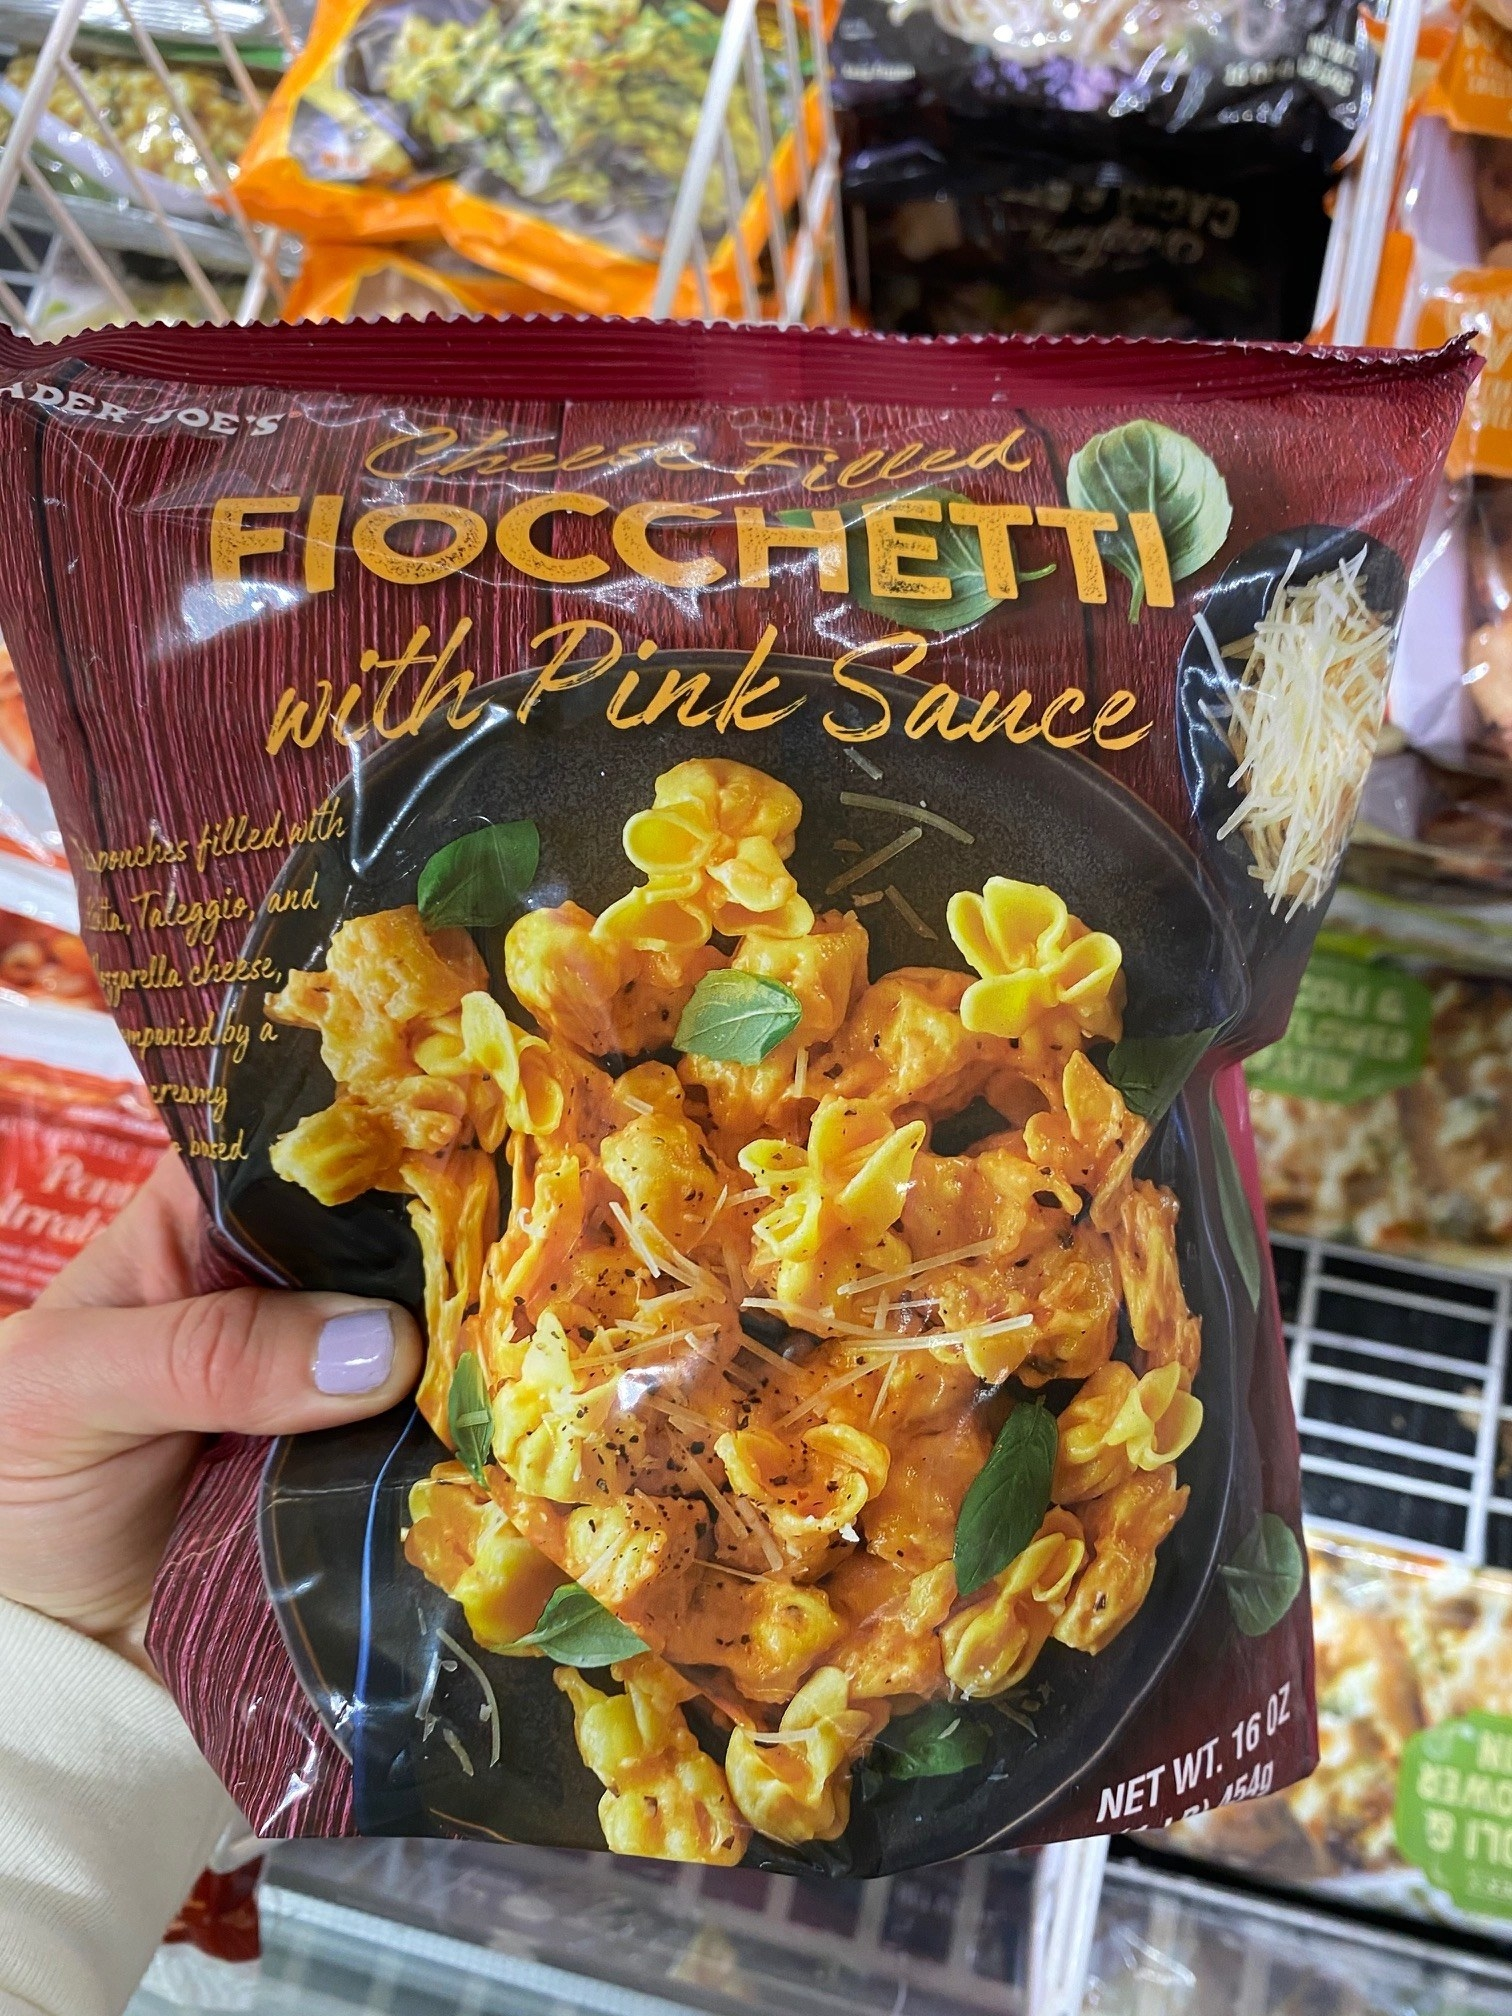 A bag of frozen fiocchetti in pink sauce from Trader Joe's.